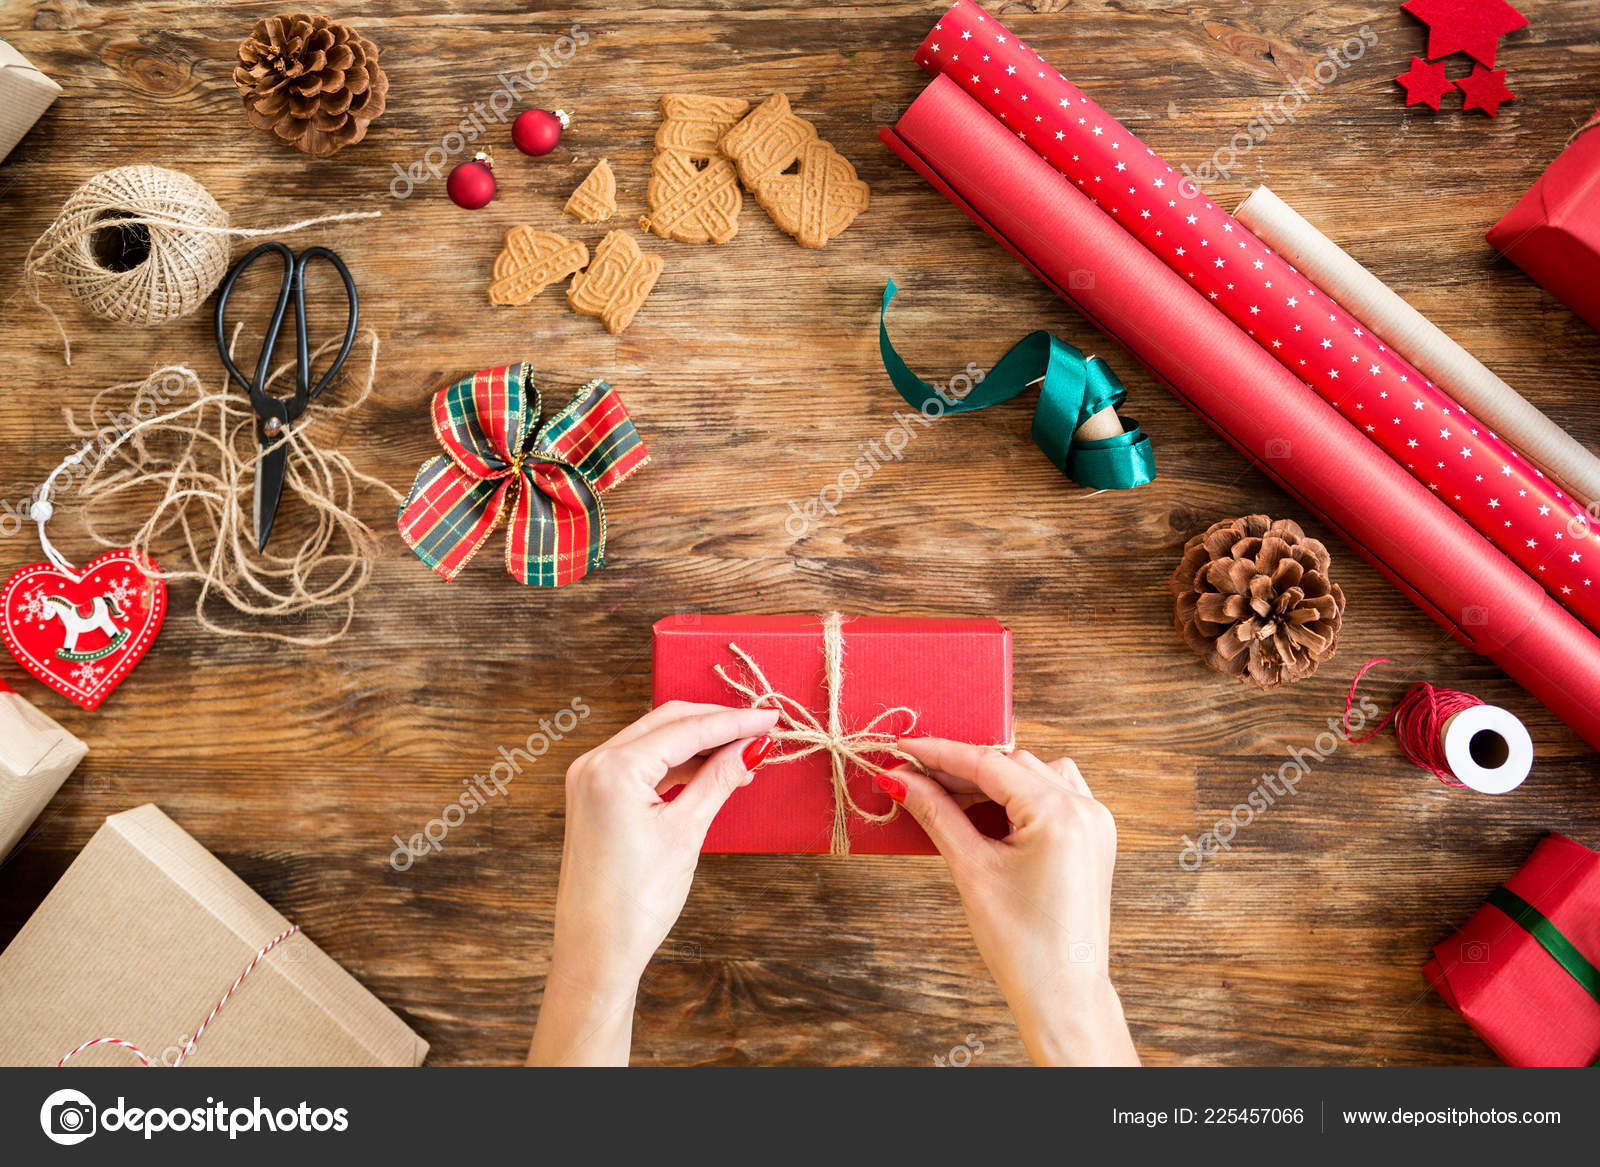 Christmas Gift Wrapping Station.Diy Gift Wrapping Woman Wrapping Beautiful Red Christmas